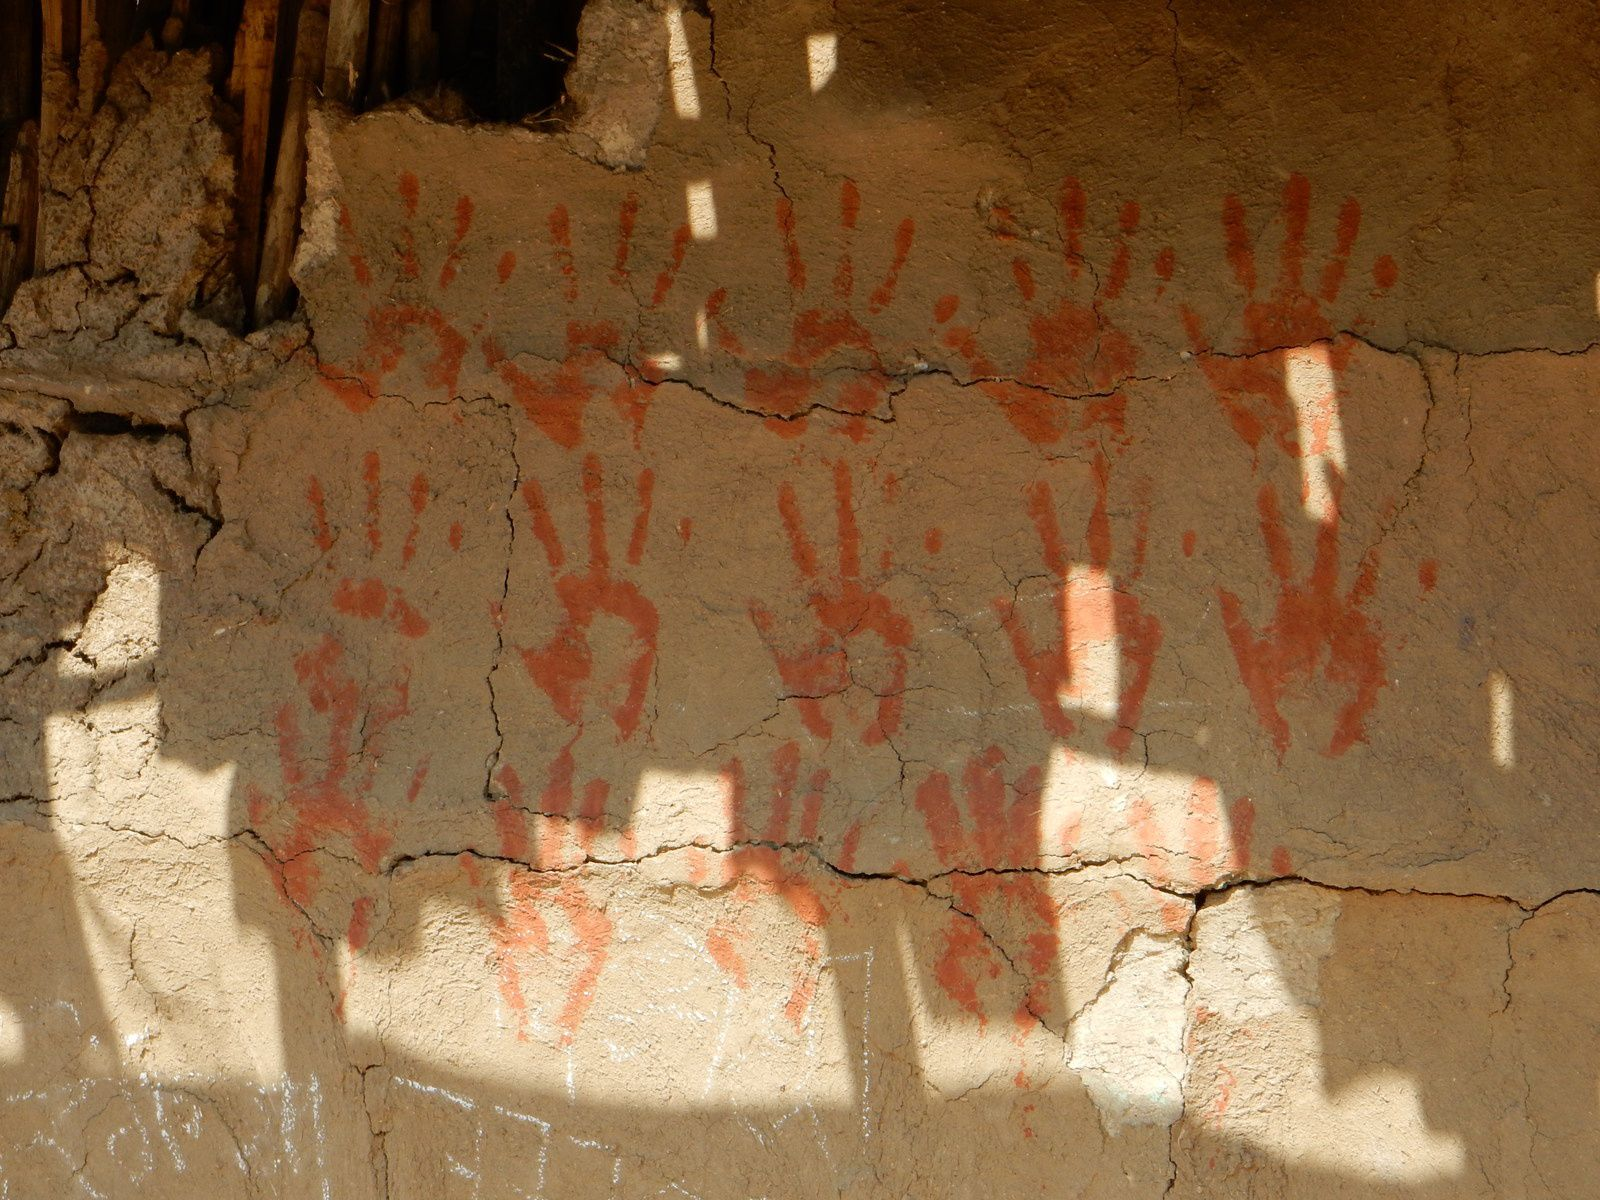 Hands, Burhanpur District - May 2014